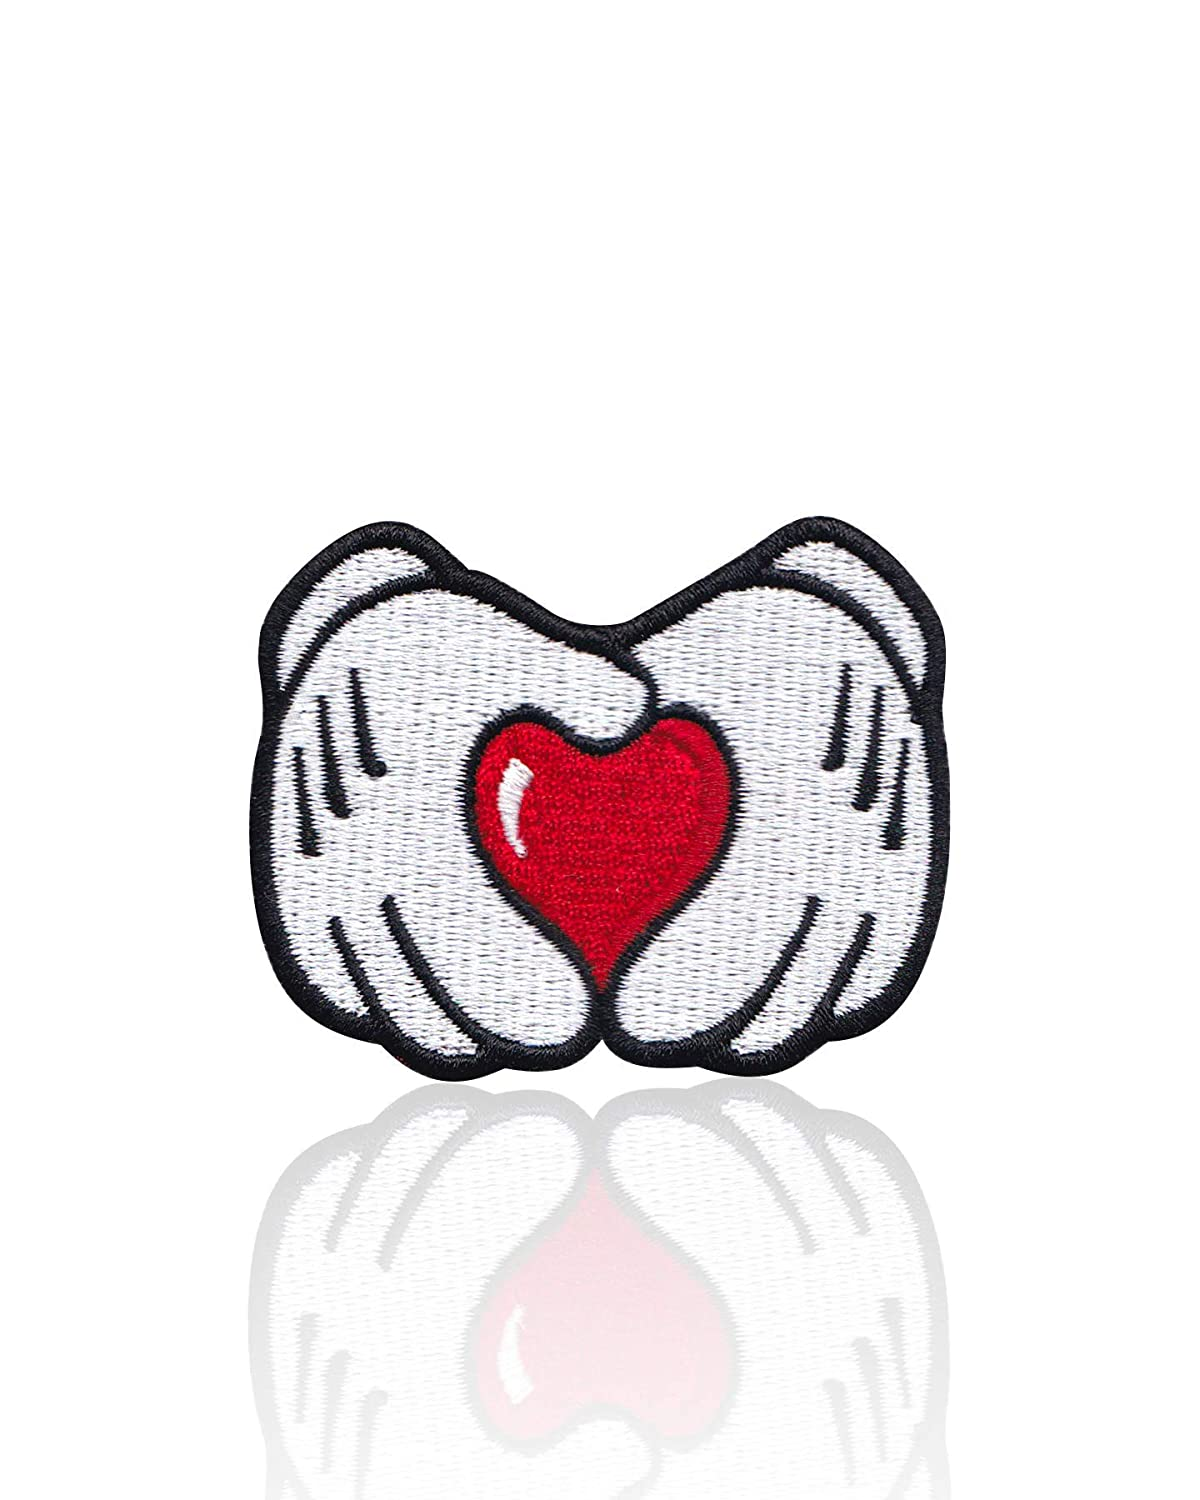 White Red Hats Bags Denim Jackets Mickey Mouse Heart Hands Iron on /& Sew on Embroidered Applique Decoration DIY Craft for Tshirts